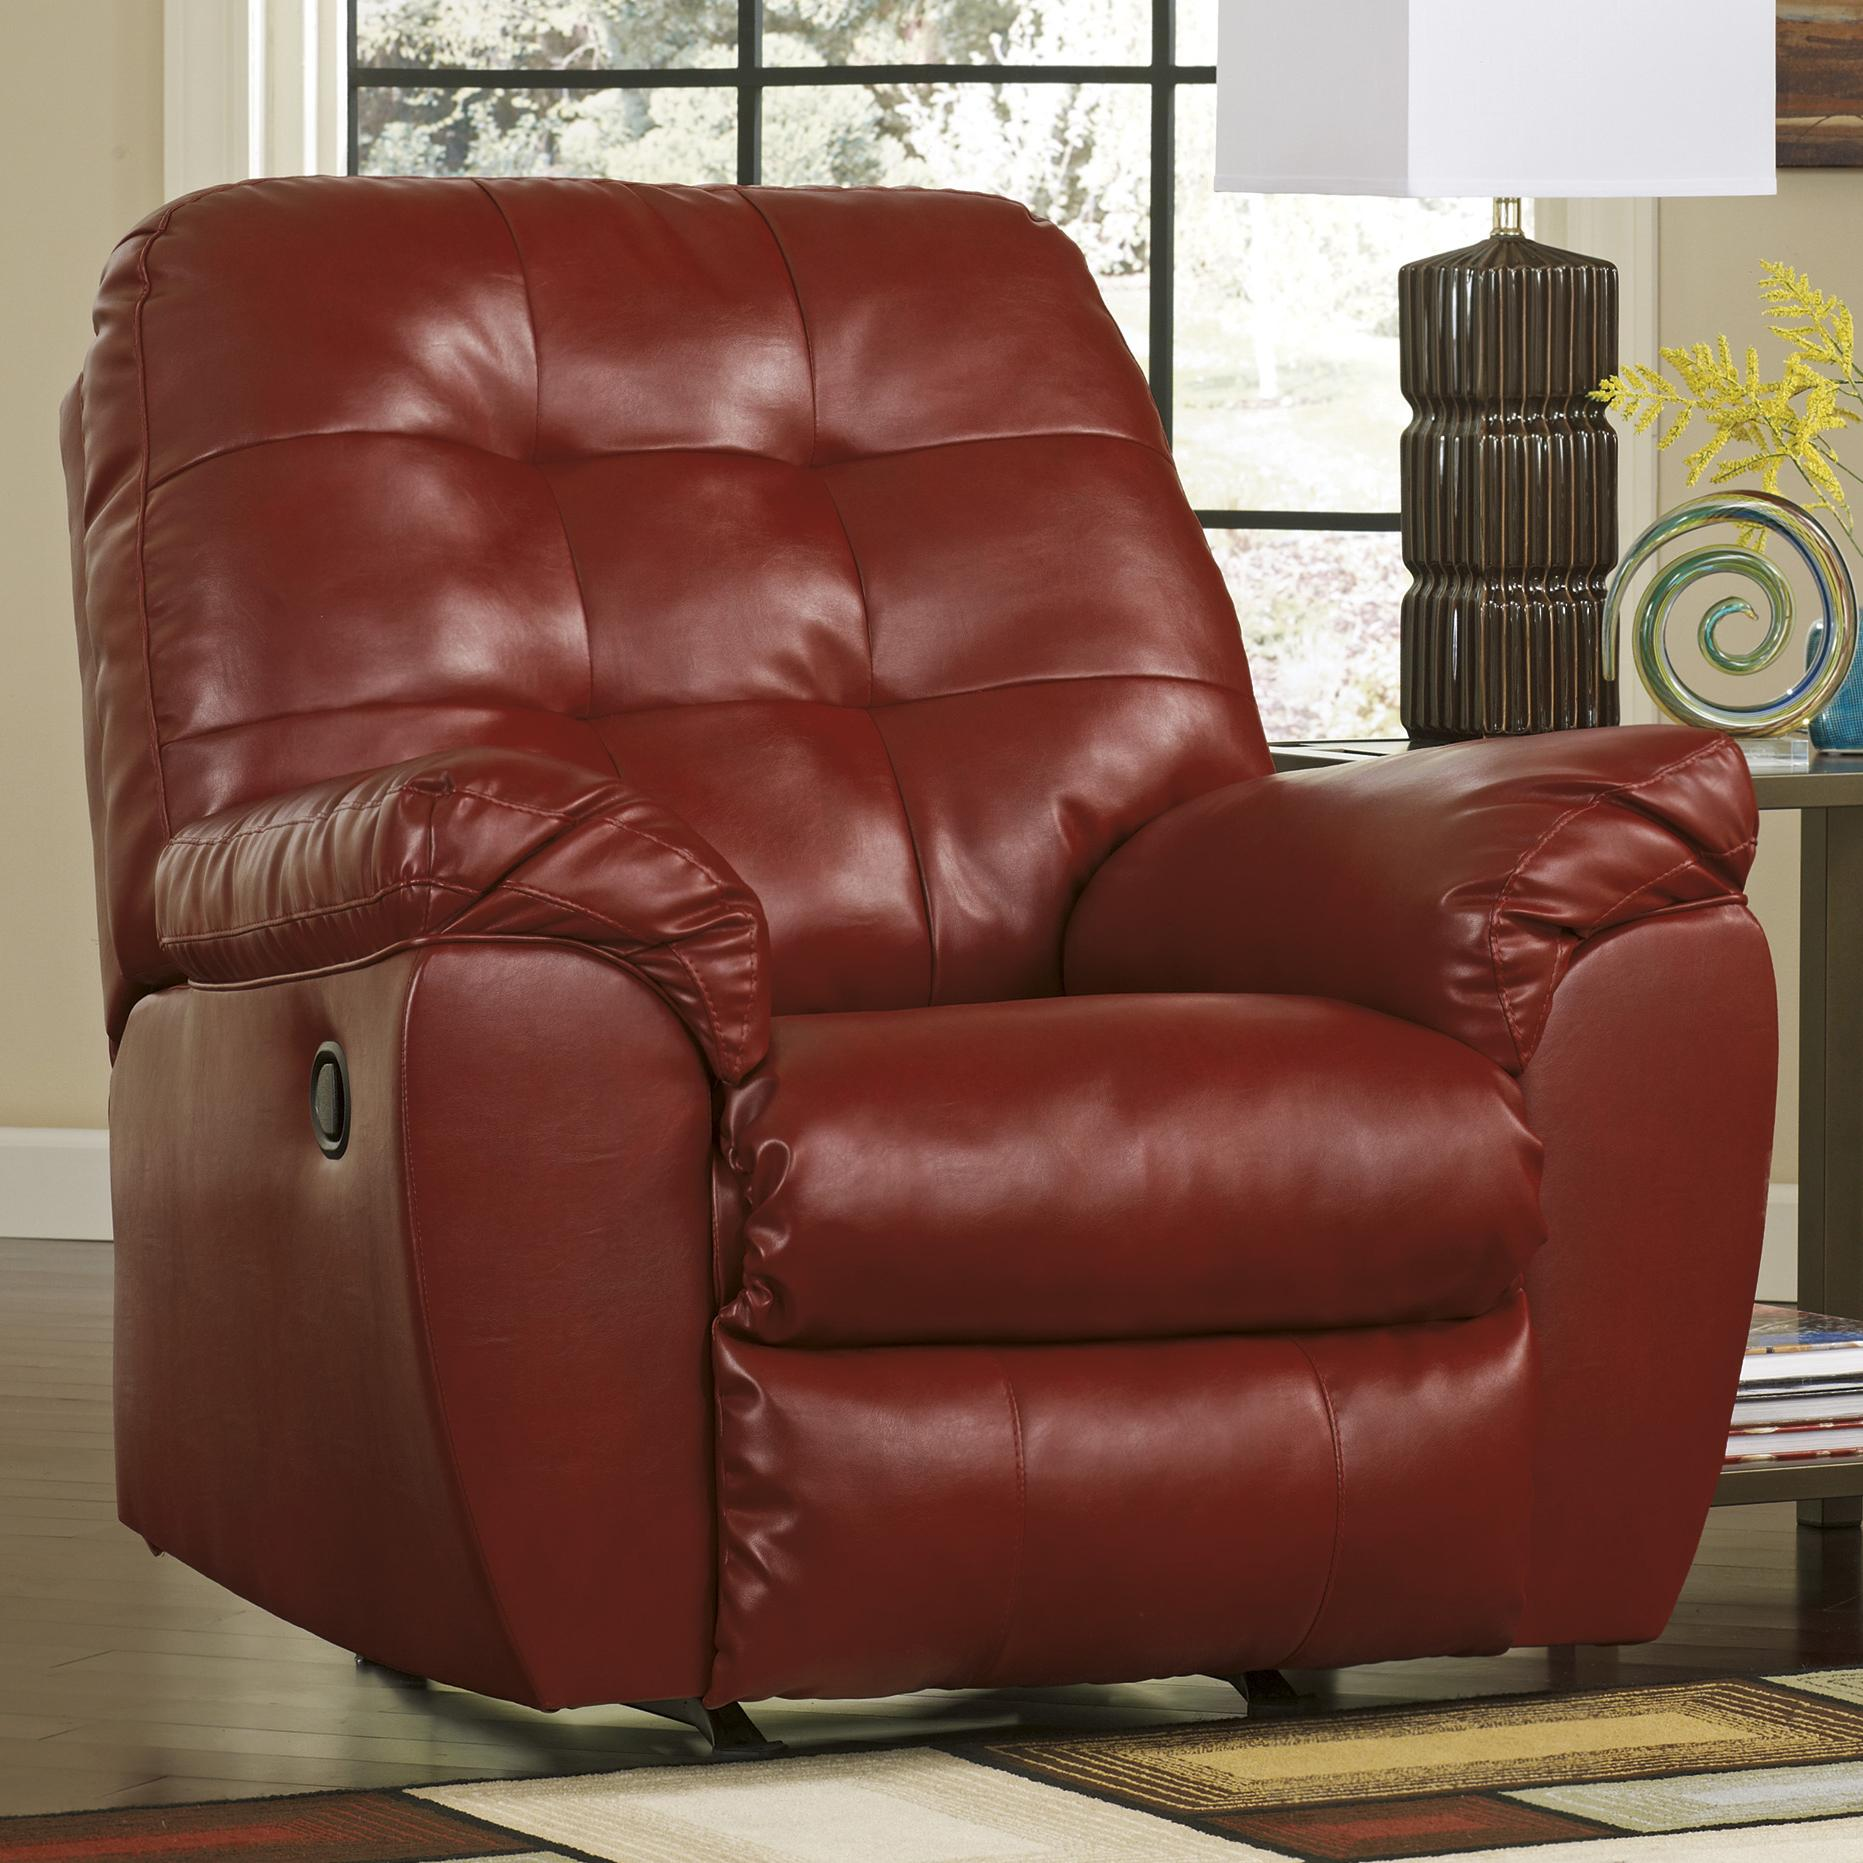 Signature Design by Ashley Alliston DuraBlend® - Salsa Rocker Recliner - Item Number: 2010025